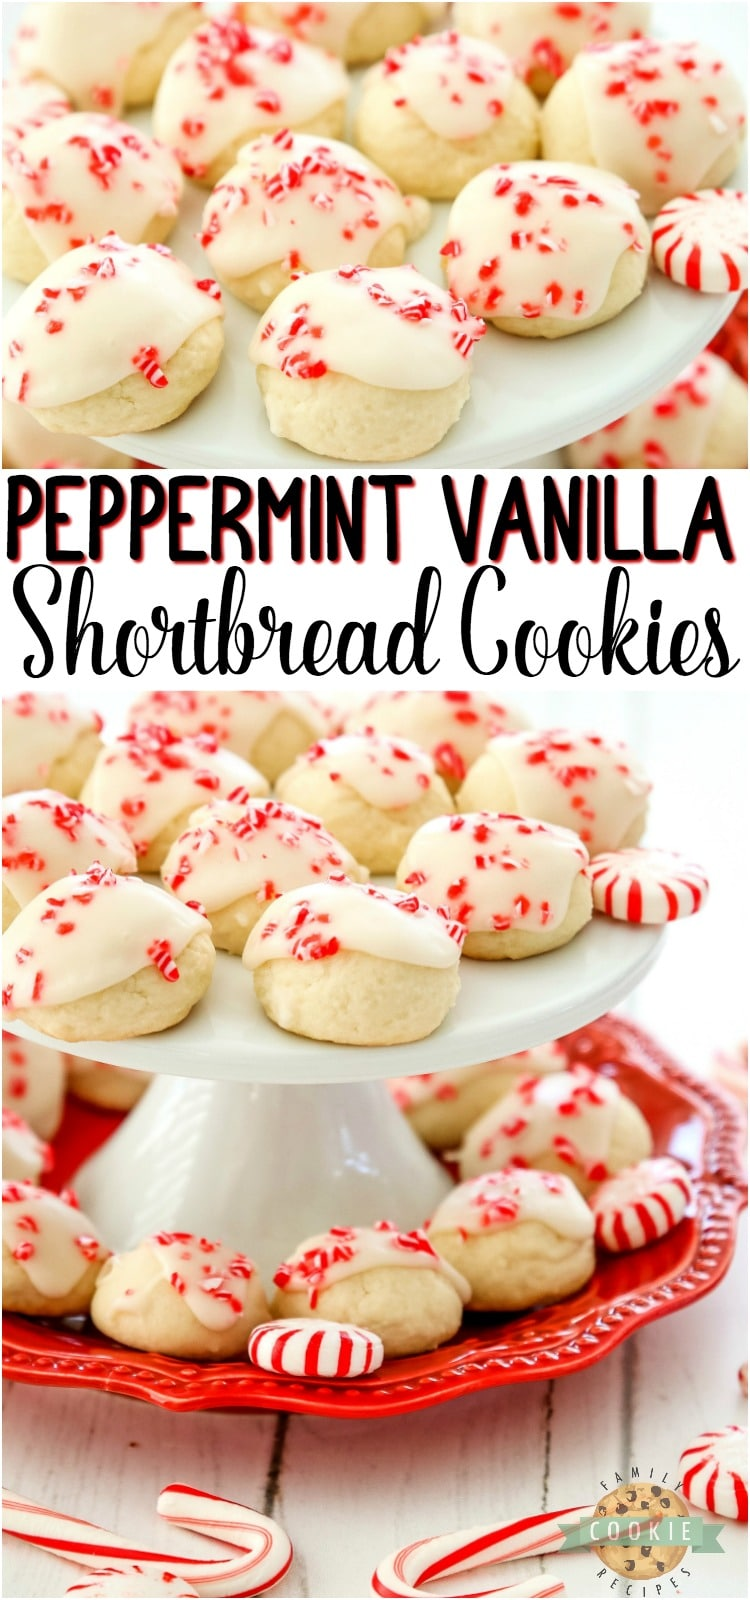 Peppermint Vanilla Shortbread Cookies are perfectly tender, buttery whipped shortbread with a lovely peppermint vanilla glaze on top! Festive Christmas cookies that everyone enjoys! #shortbread #peppermint #vanilla #baking #butter #dessert #Christmas #cookies from FAMILY COOKIE RECIPES